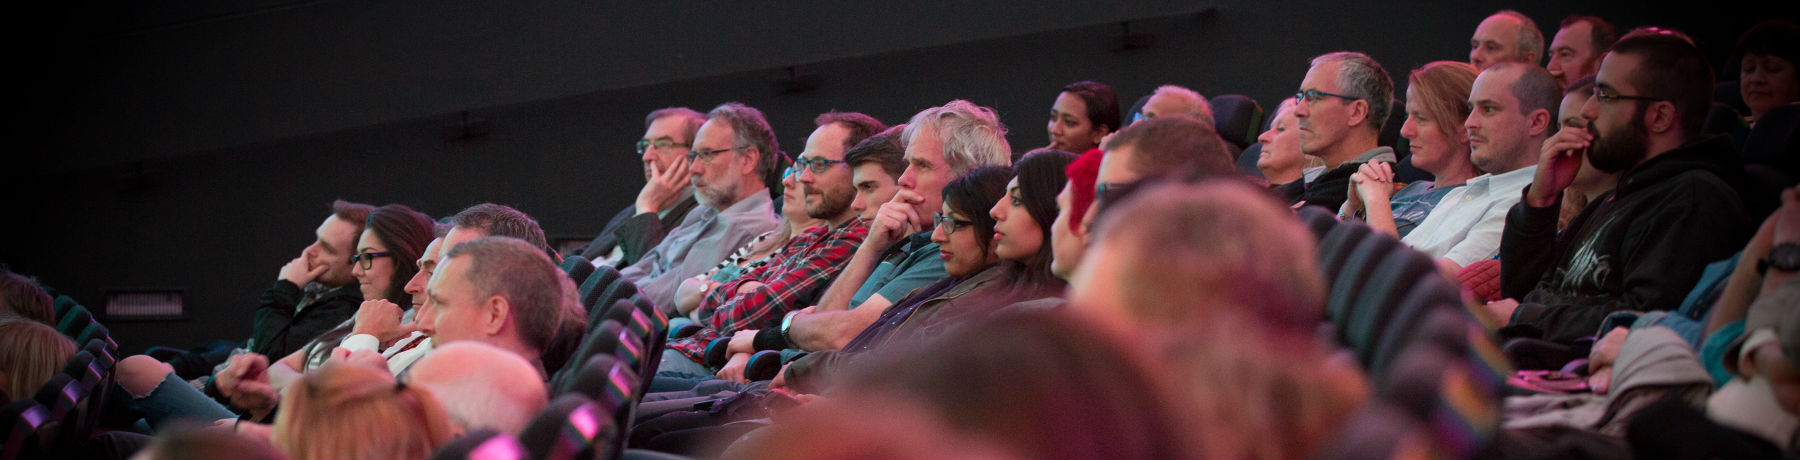 An audience listens to a speaker at a David Elder lecture in the Planetarium